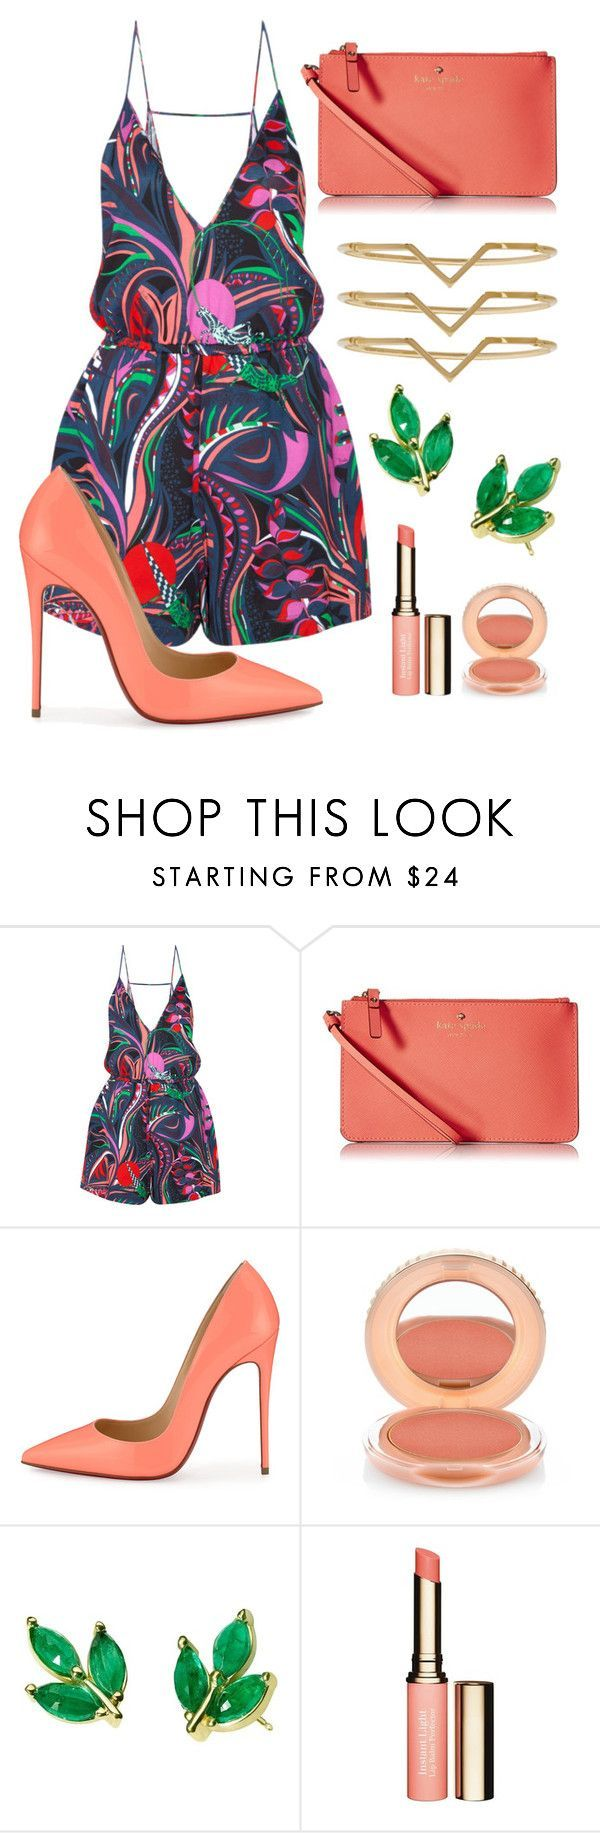 """Pick Your Color"" by perichaze ❤ liked on Polyvore featuring Emilio Pucci, Kate Spade, Christian Louboutin, Paul & Joe, Finn, Clarins, Elizabeth and James, women's clothing, women's fashion and women"